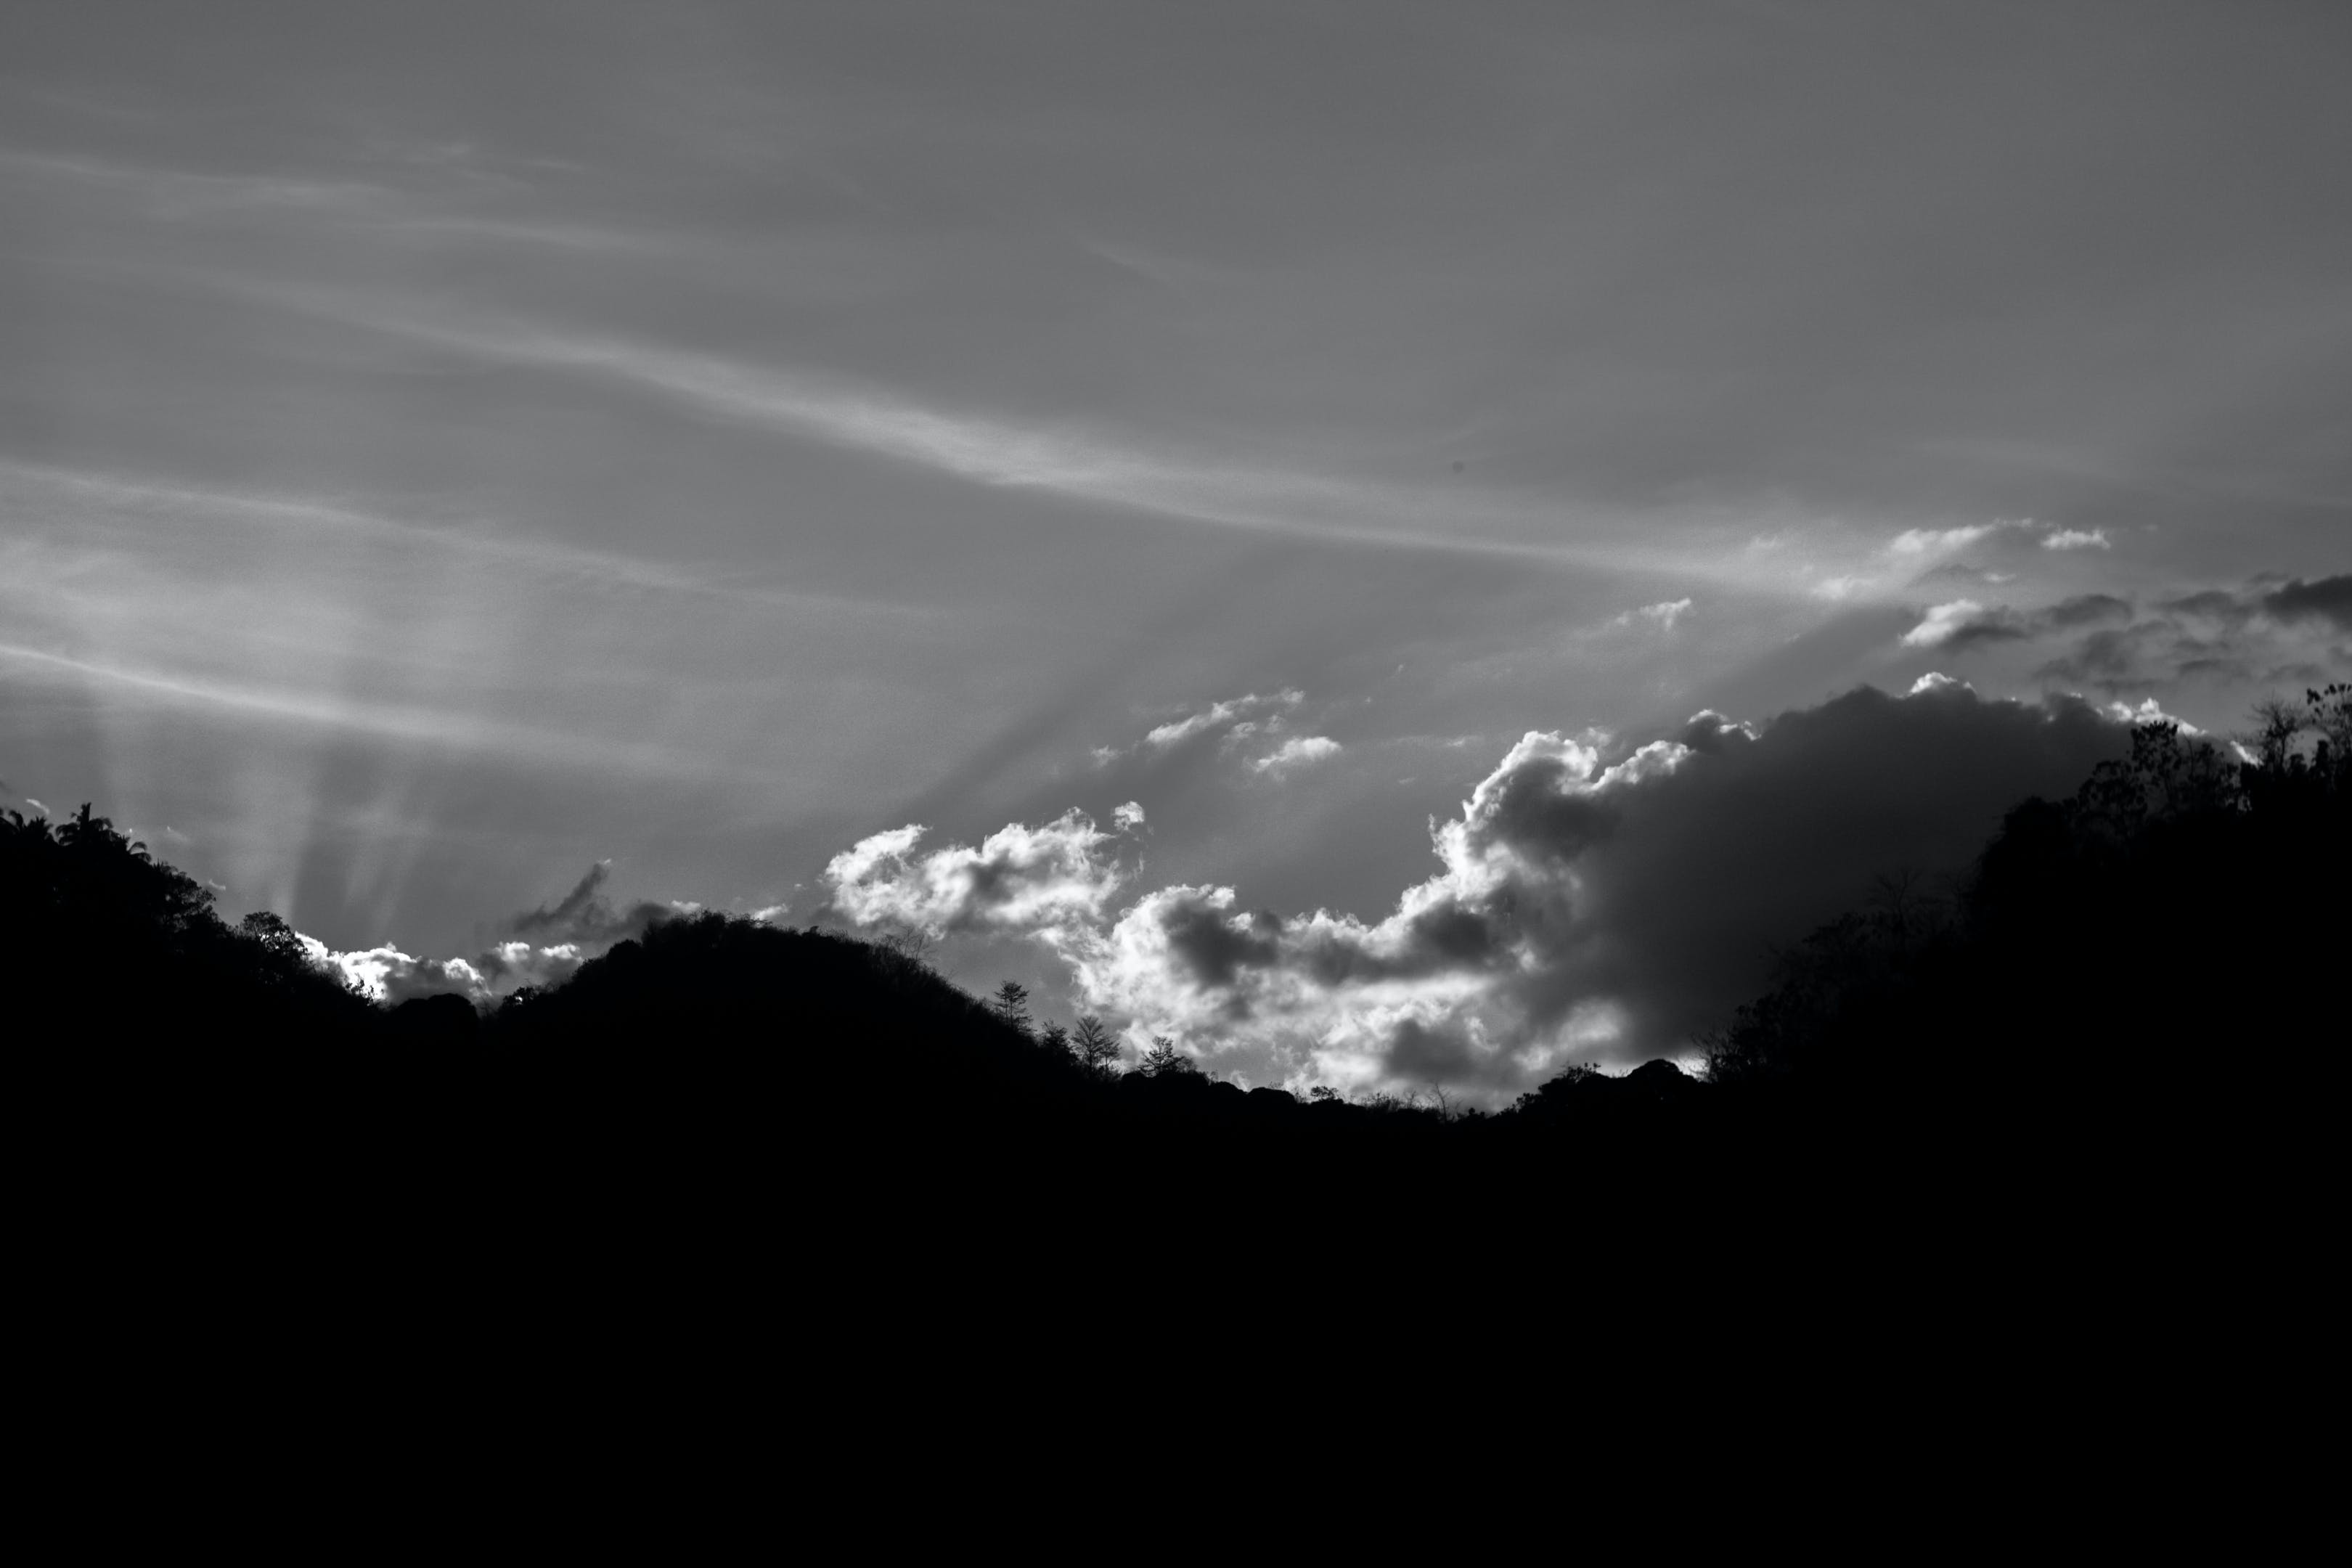 black-and-white, clouds, mountains